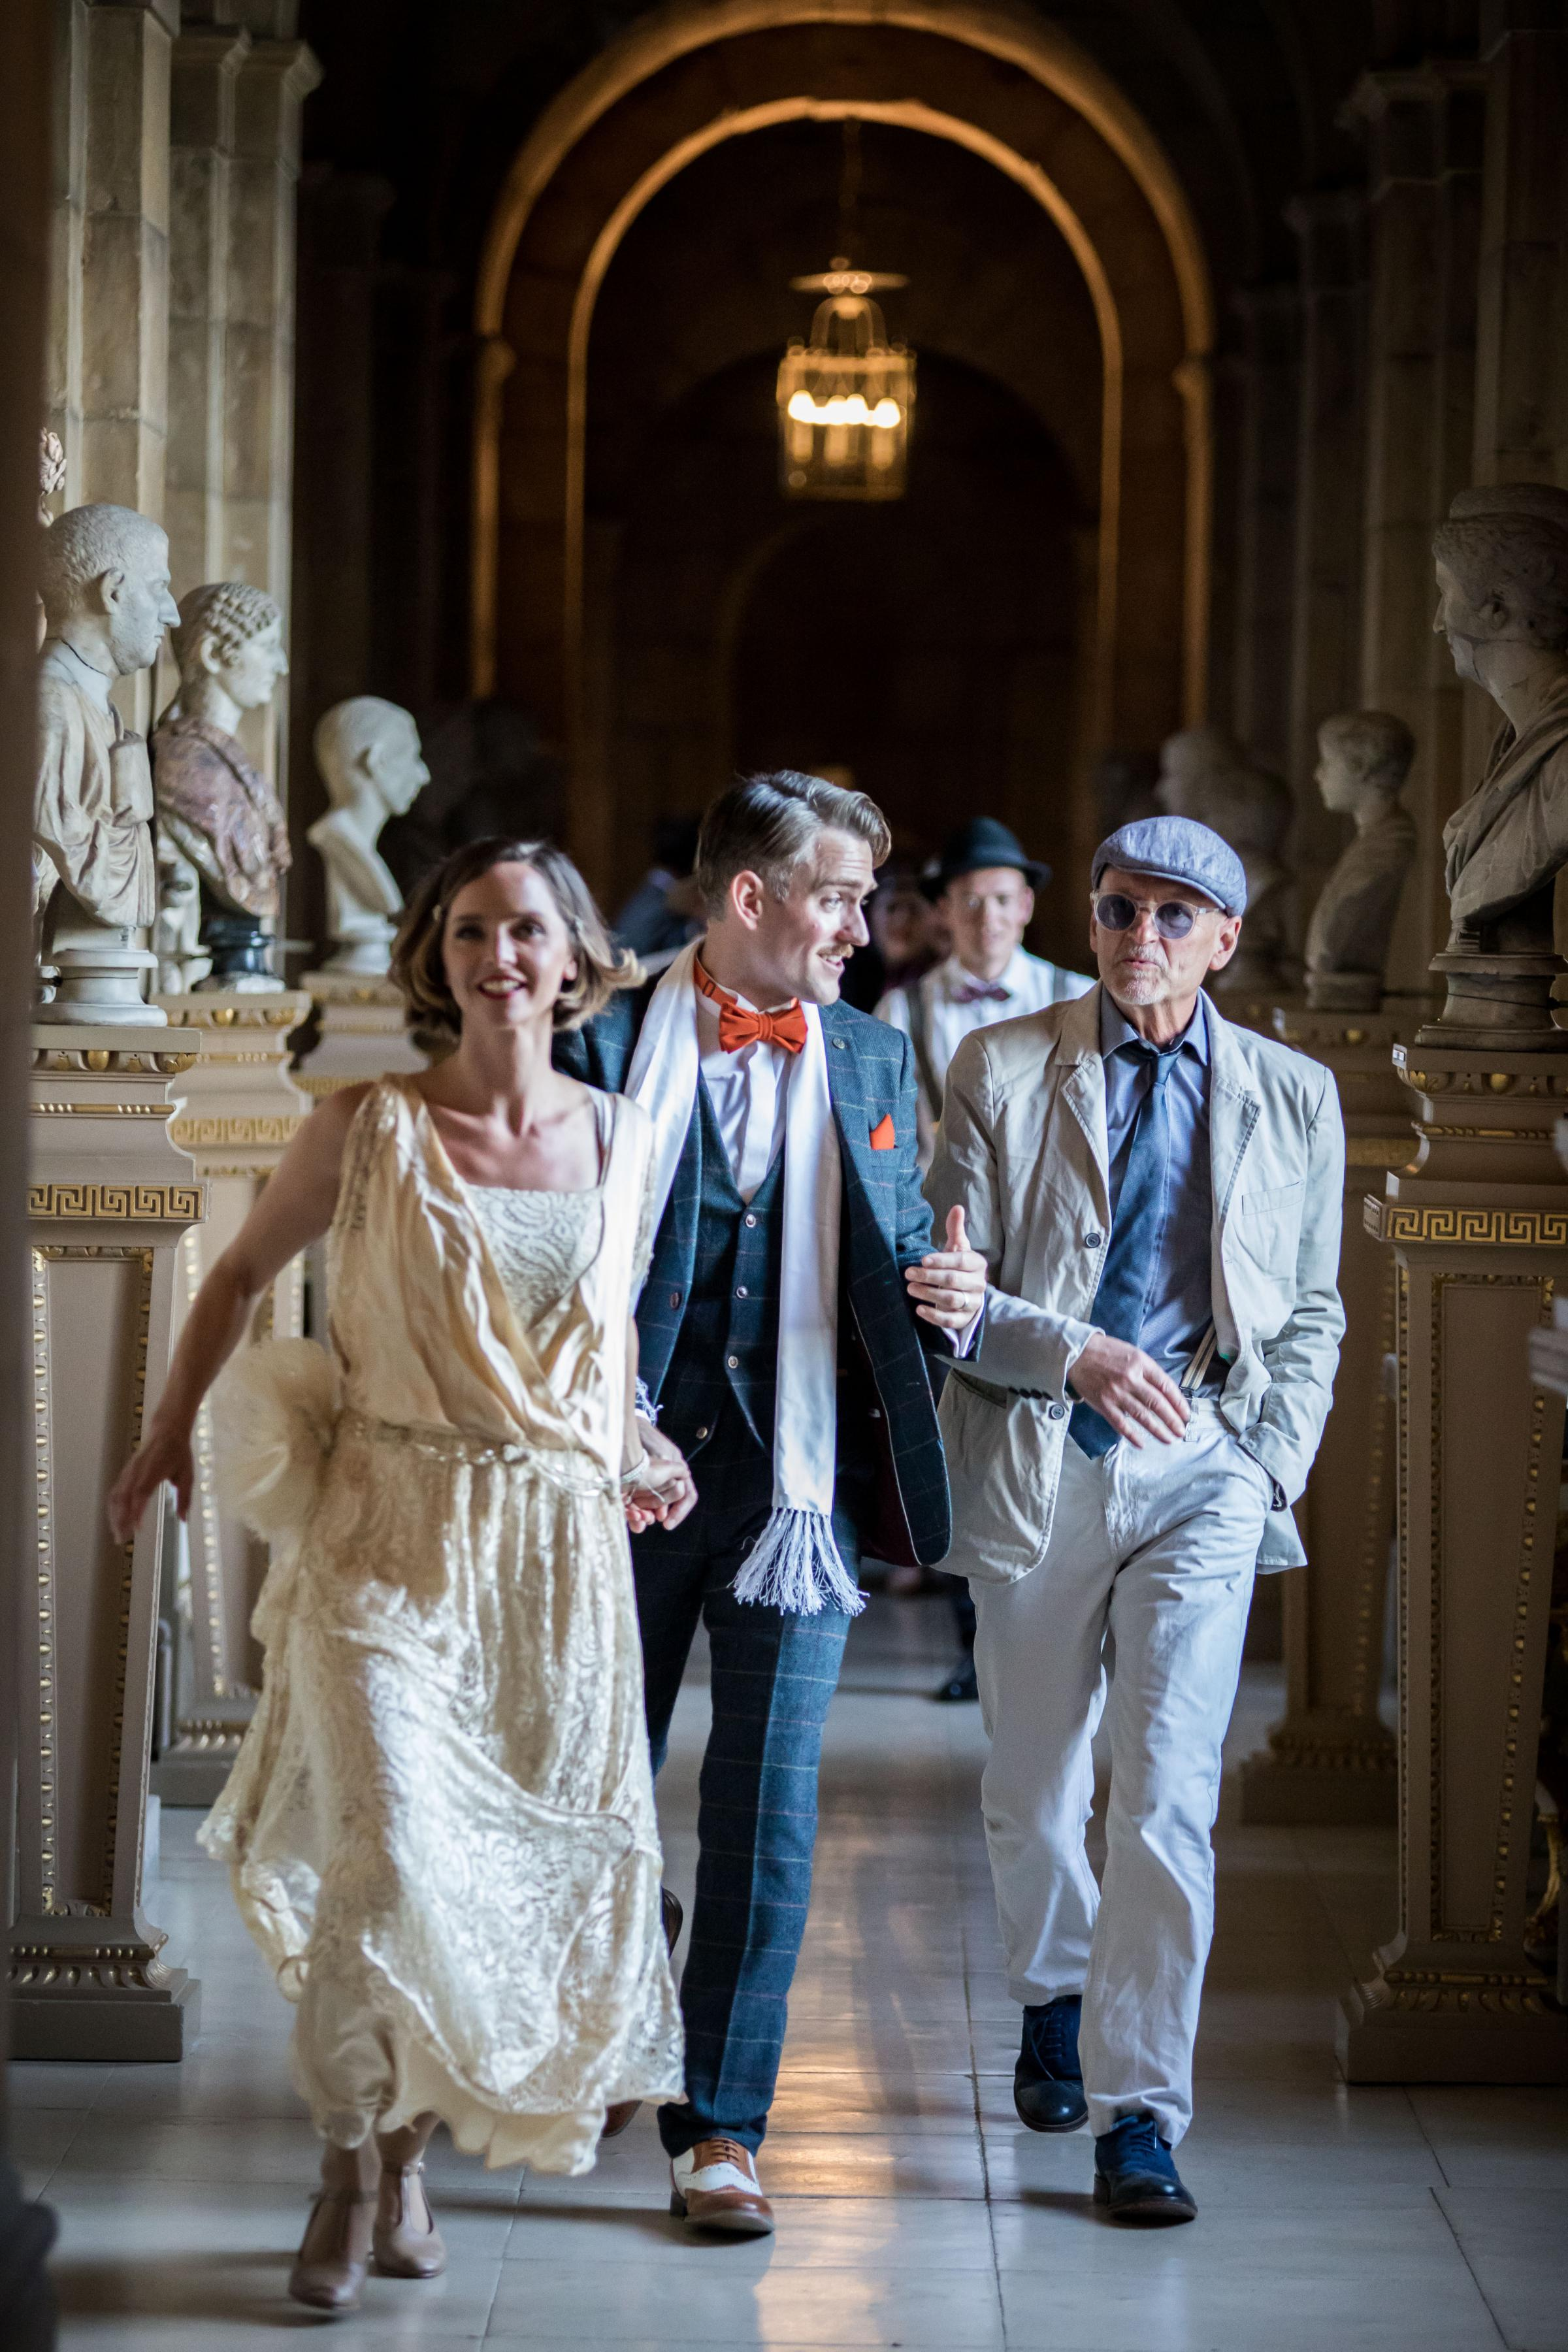 Amie Burns Walker's Daisy Buchanan and Cornelius Geaney Jnr as Tom Buchanan with a party reveller at The Great Gatsby at Castle Howard